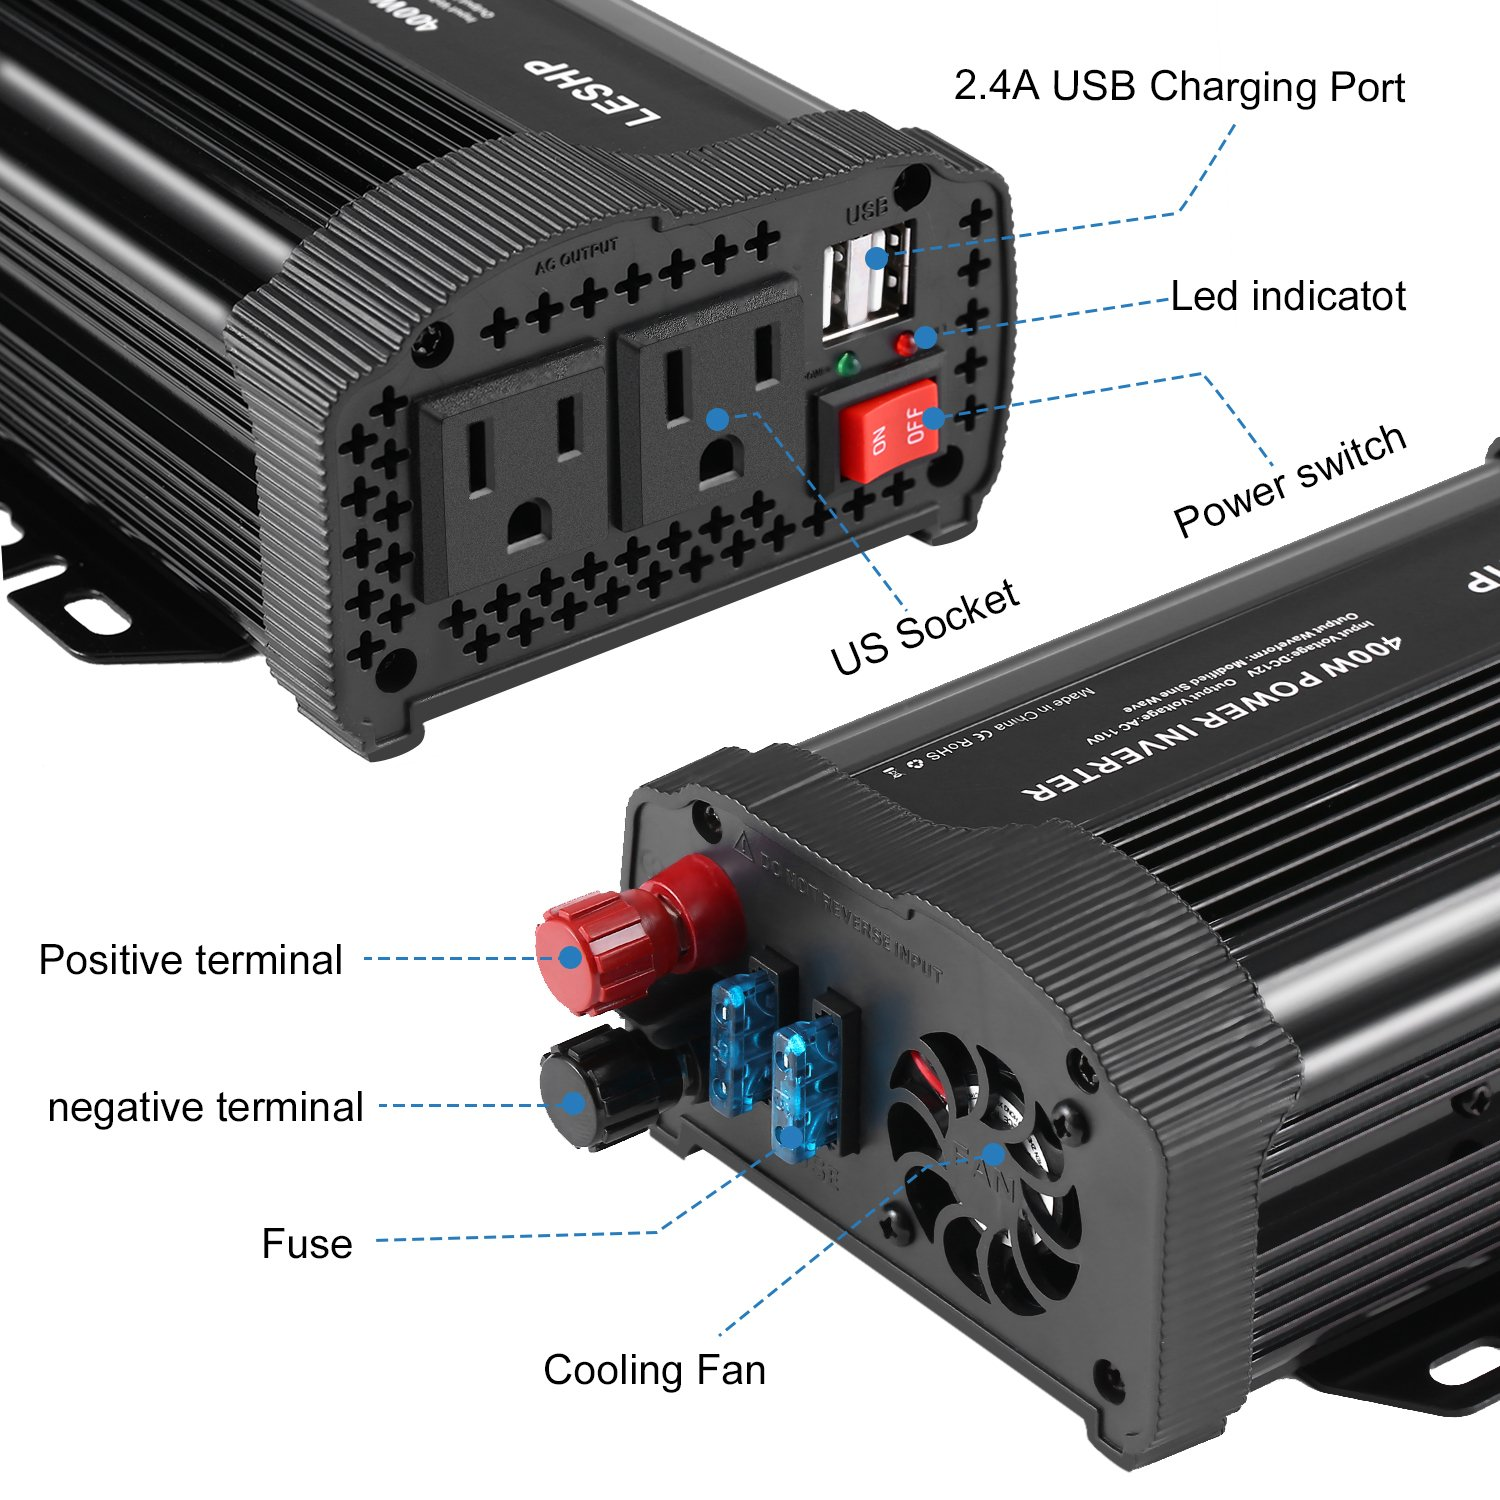 LESHP 400W Power Inverter DC 12V to AC 110V Car Adapter with 4.8A 2 USB Charging Ports by LESHP (Image #3)